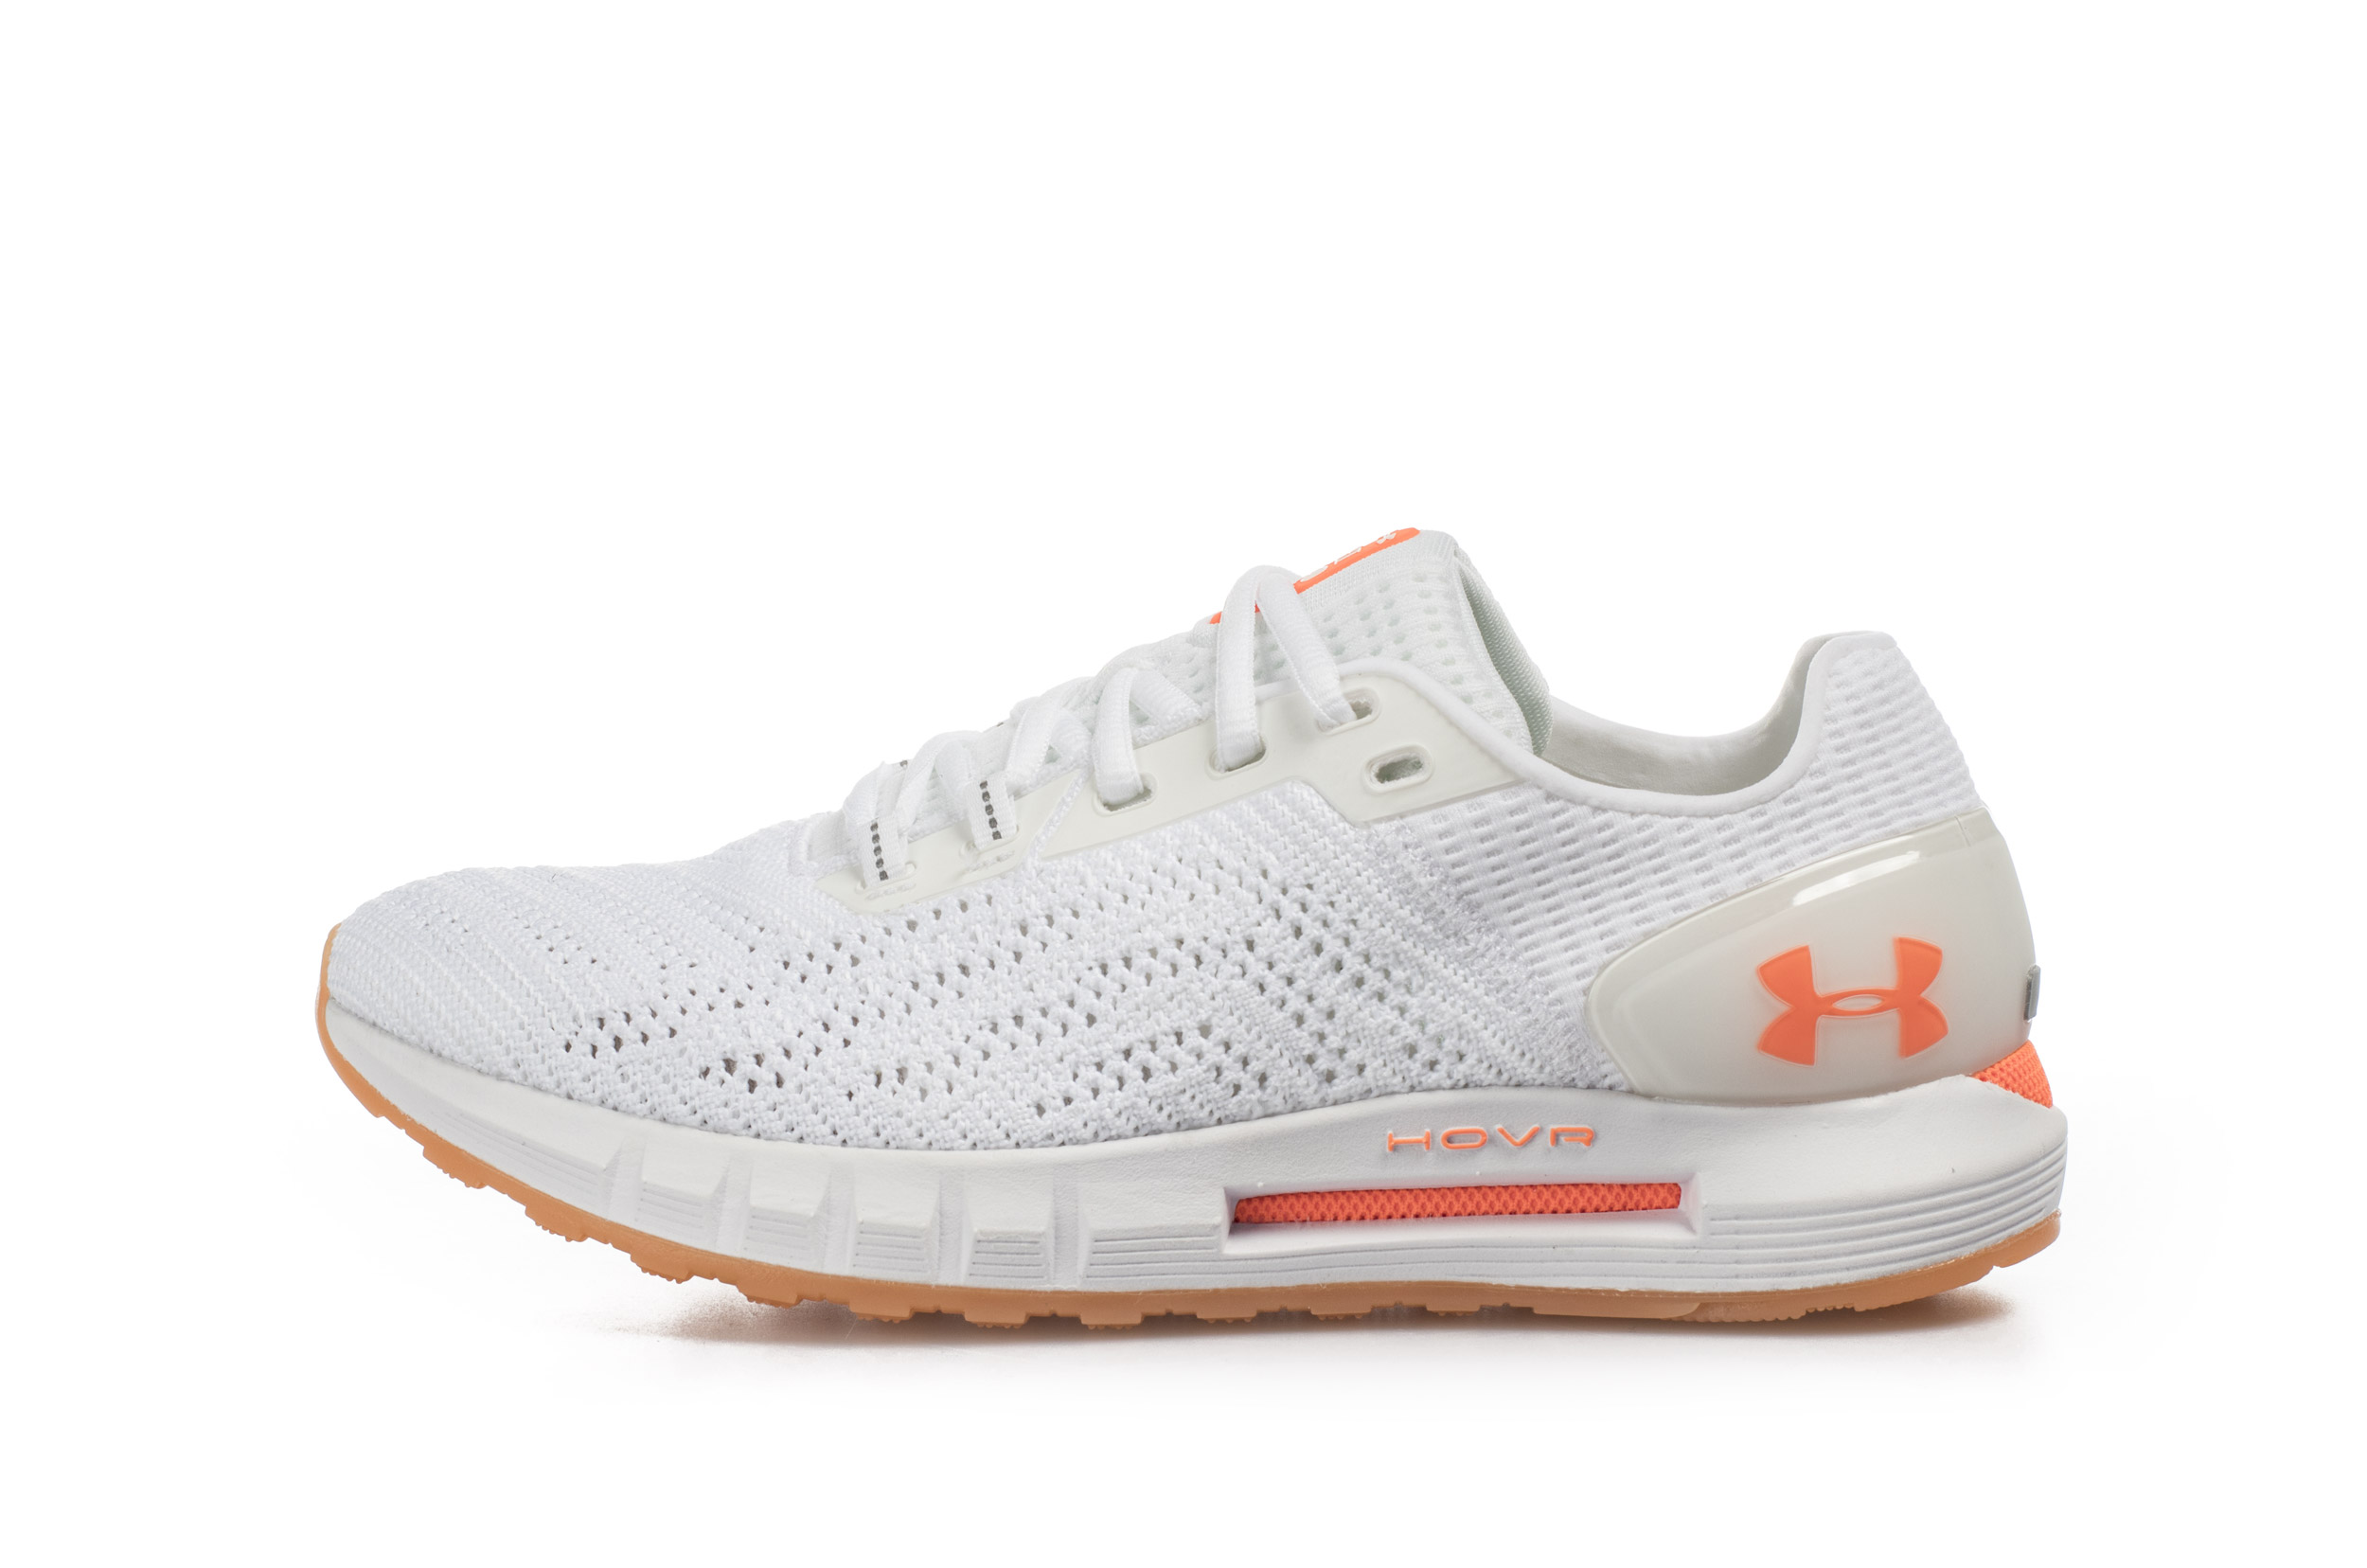 UNDER ARMOUR HOVR SONIC 3021588-106 Λευκό